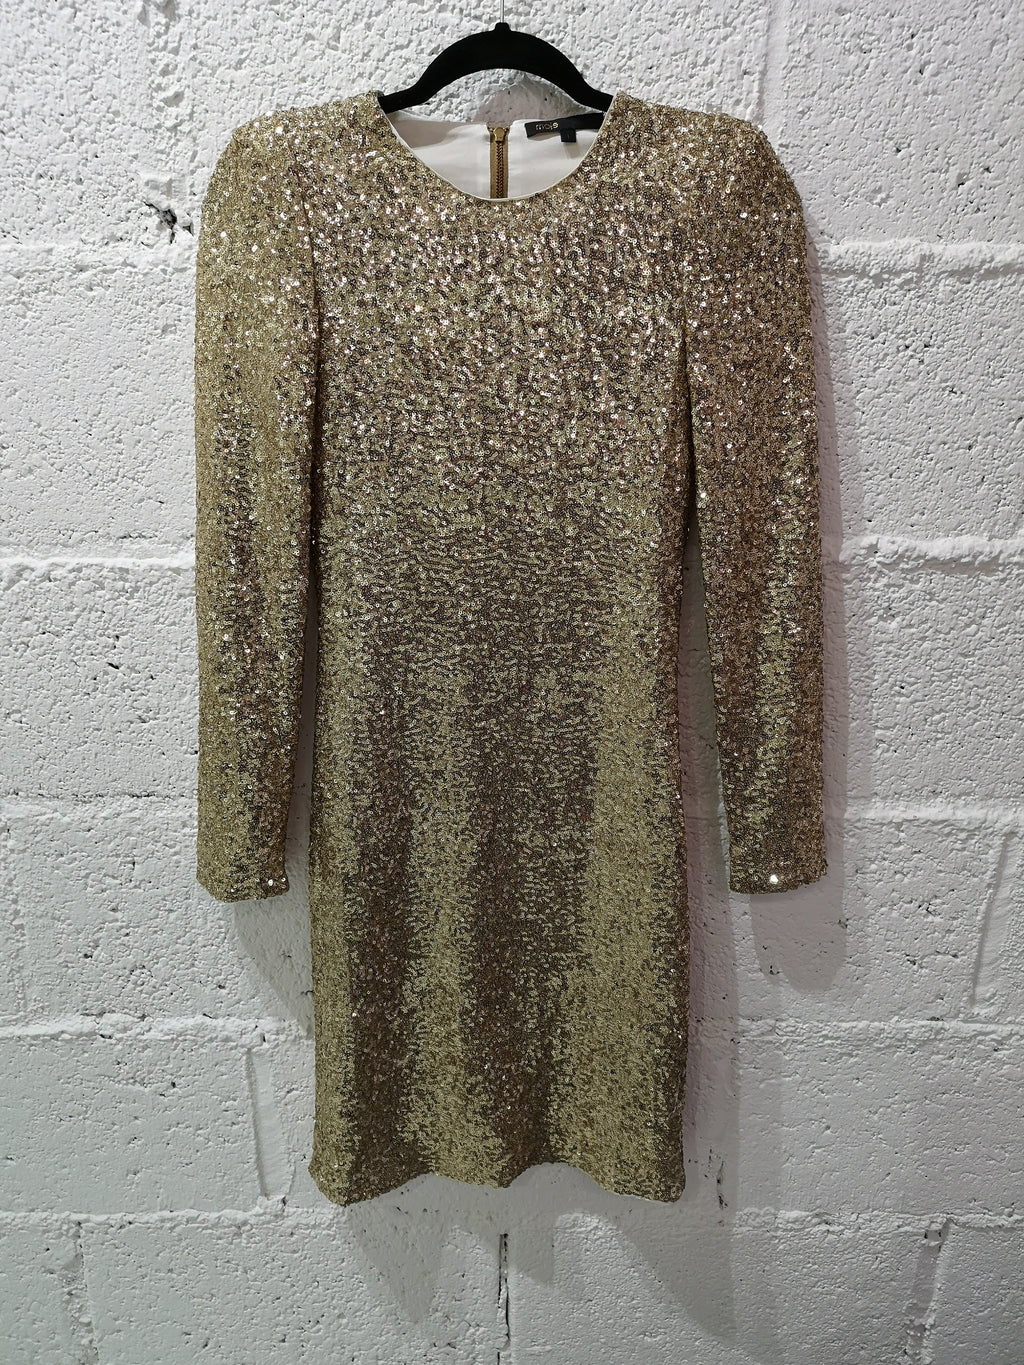 Maje Gold Sequin Dress, Size 1, UK 8